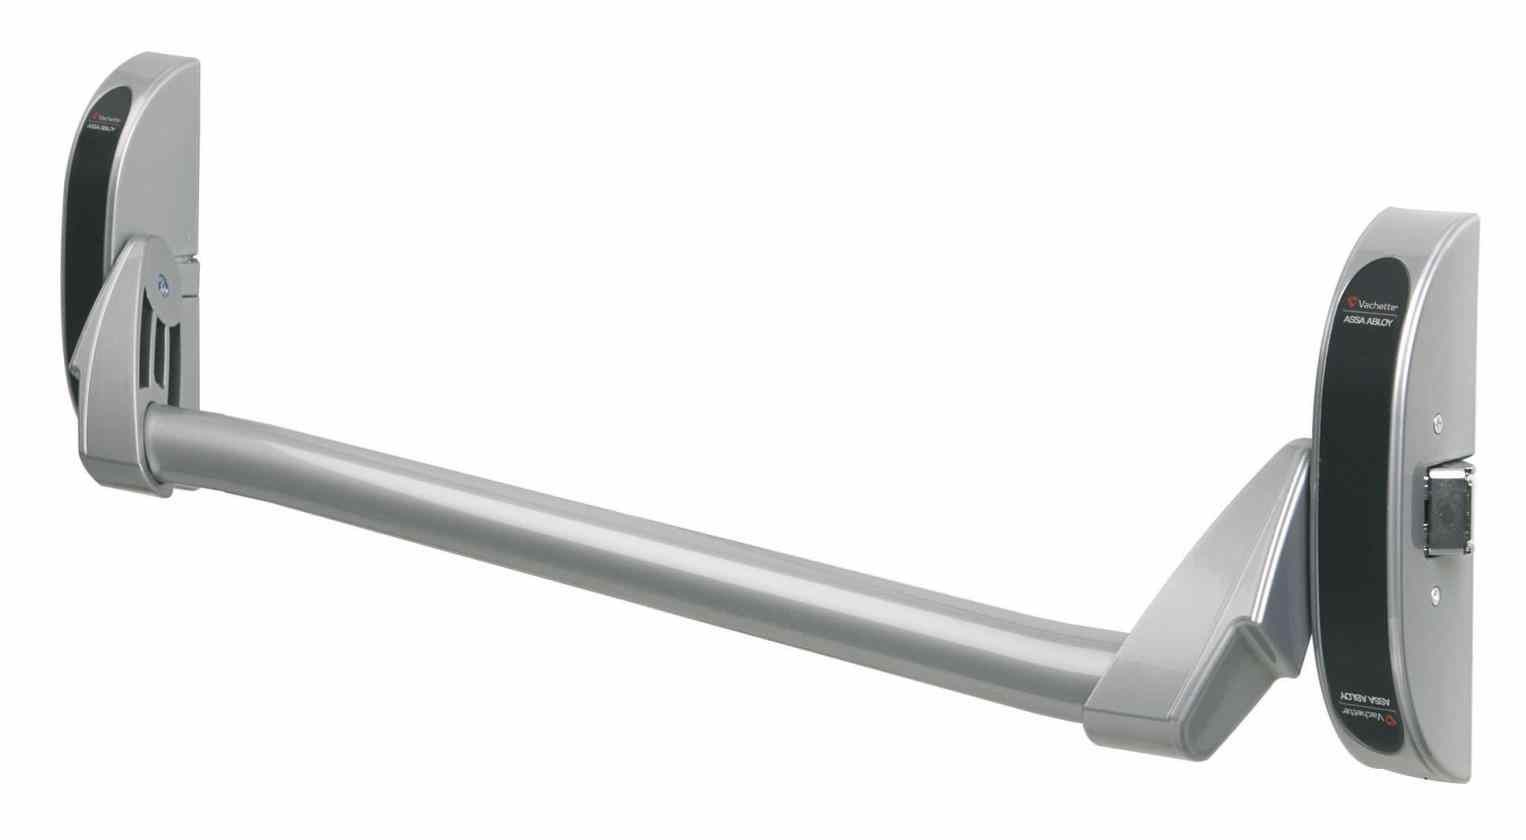 commercial door pulls. Commercial Door Pulls Glass Handle Roll Up Pull Handles Imencyclopediacom C